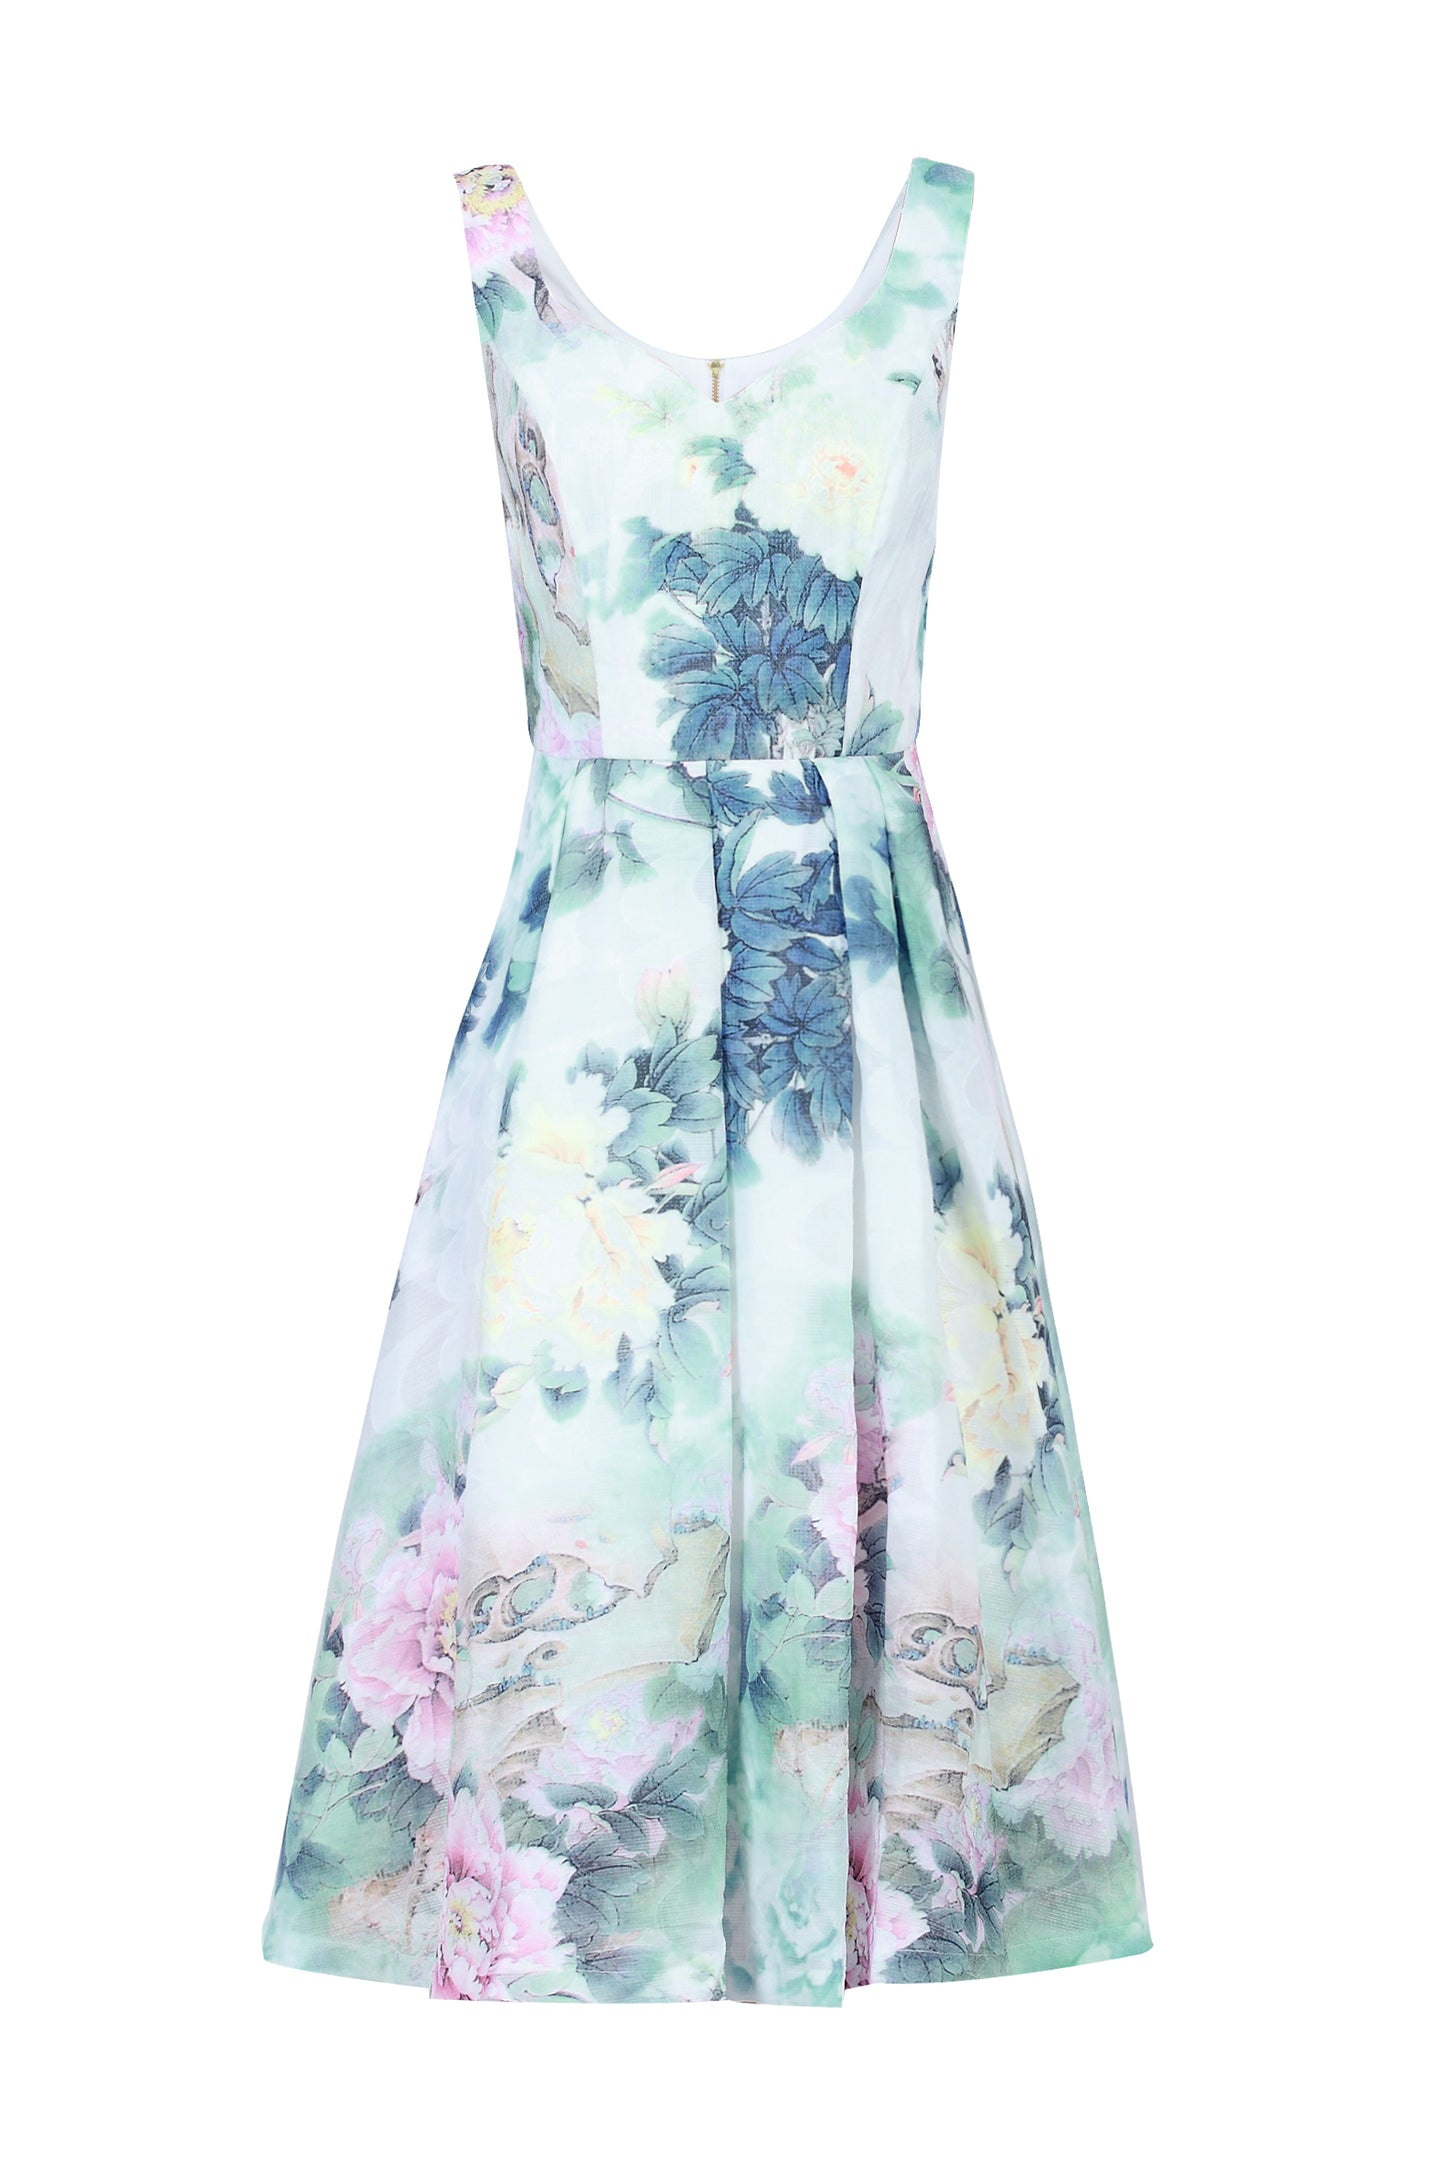 Floral Print Textured Prom Dress, Green Floral